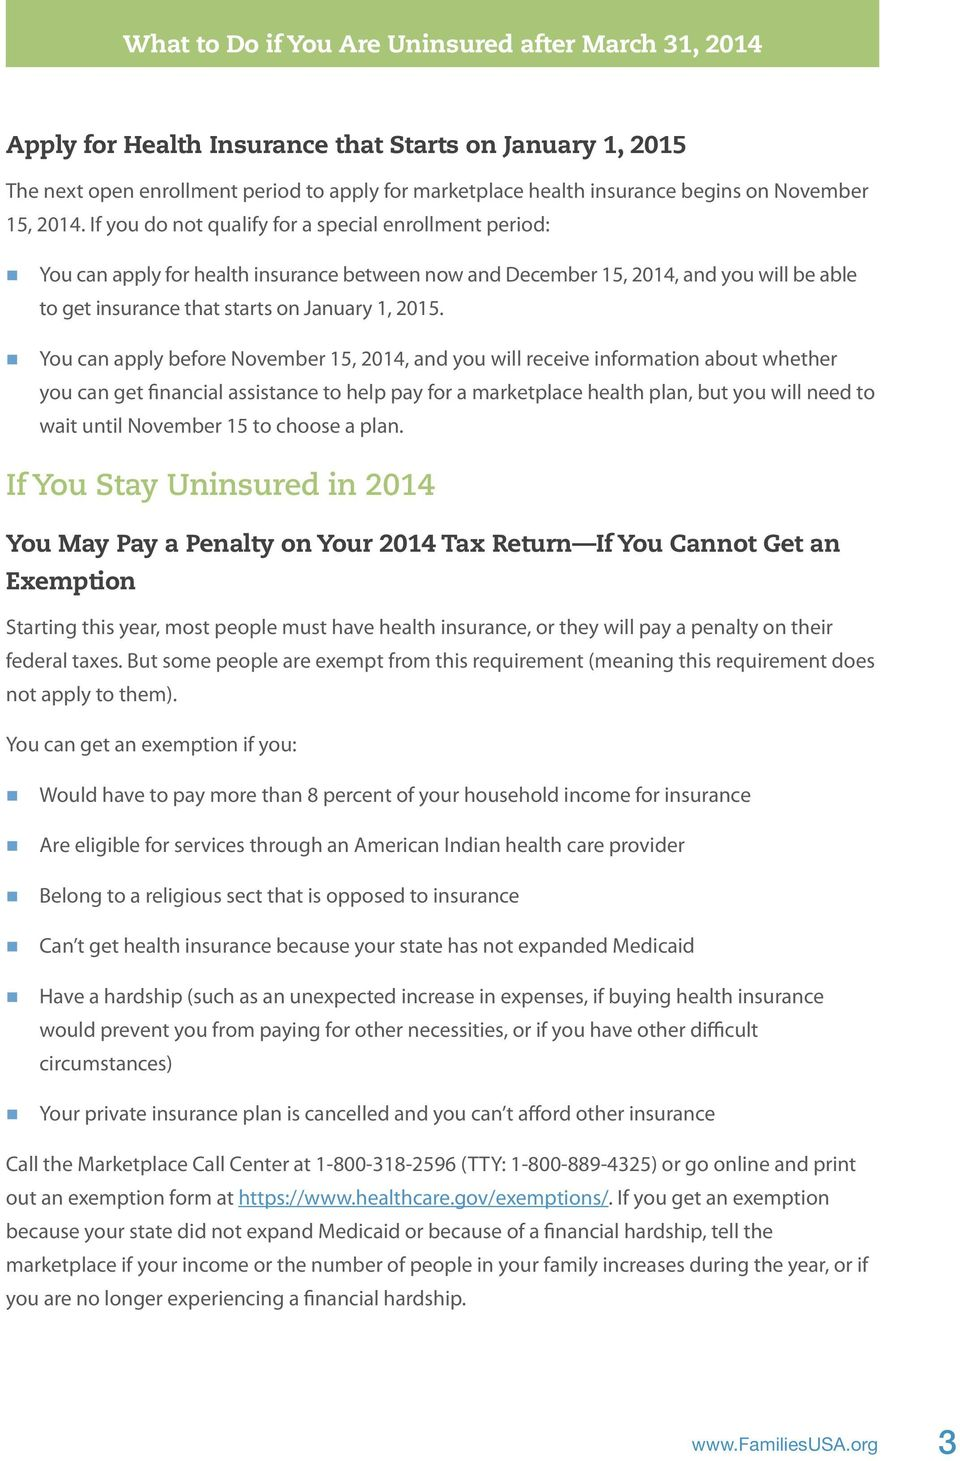 You can apply before November 15, 2014, and you will receive information about whether you can get financial assistance to help pay for a marketplace health plan, but you will need to wait until